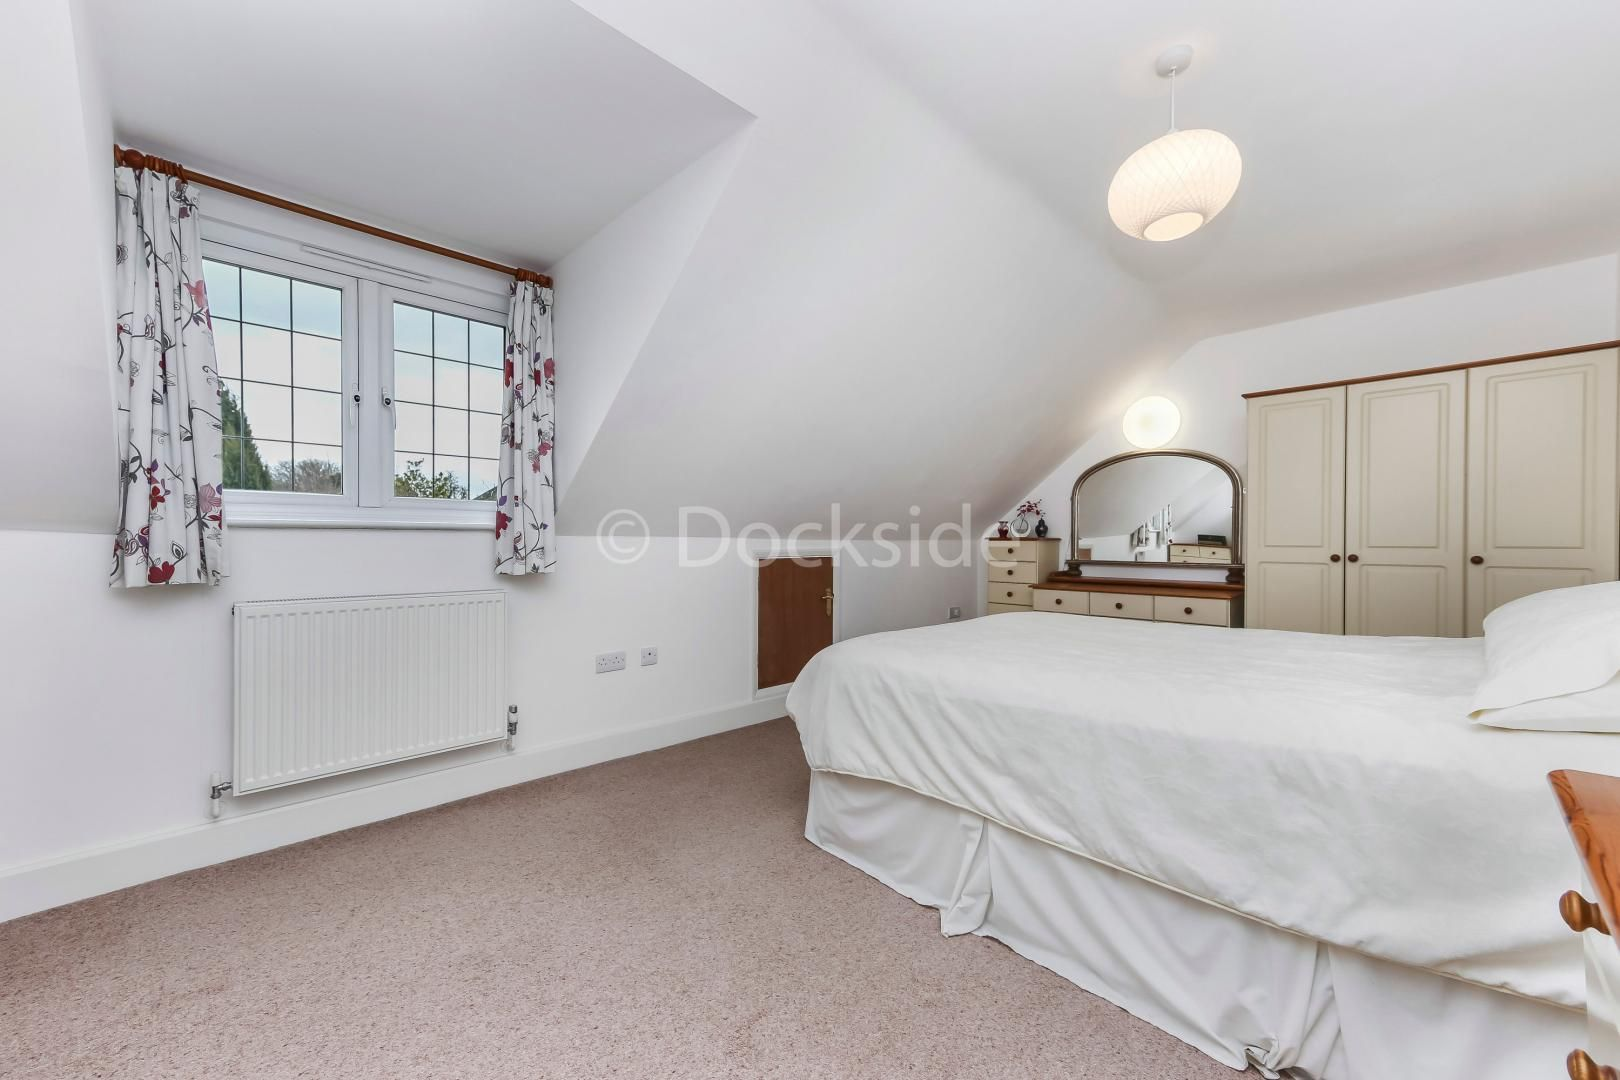 4 bed house for sale in Brompton Farm Road  - Property Image 11